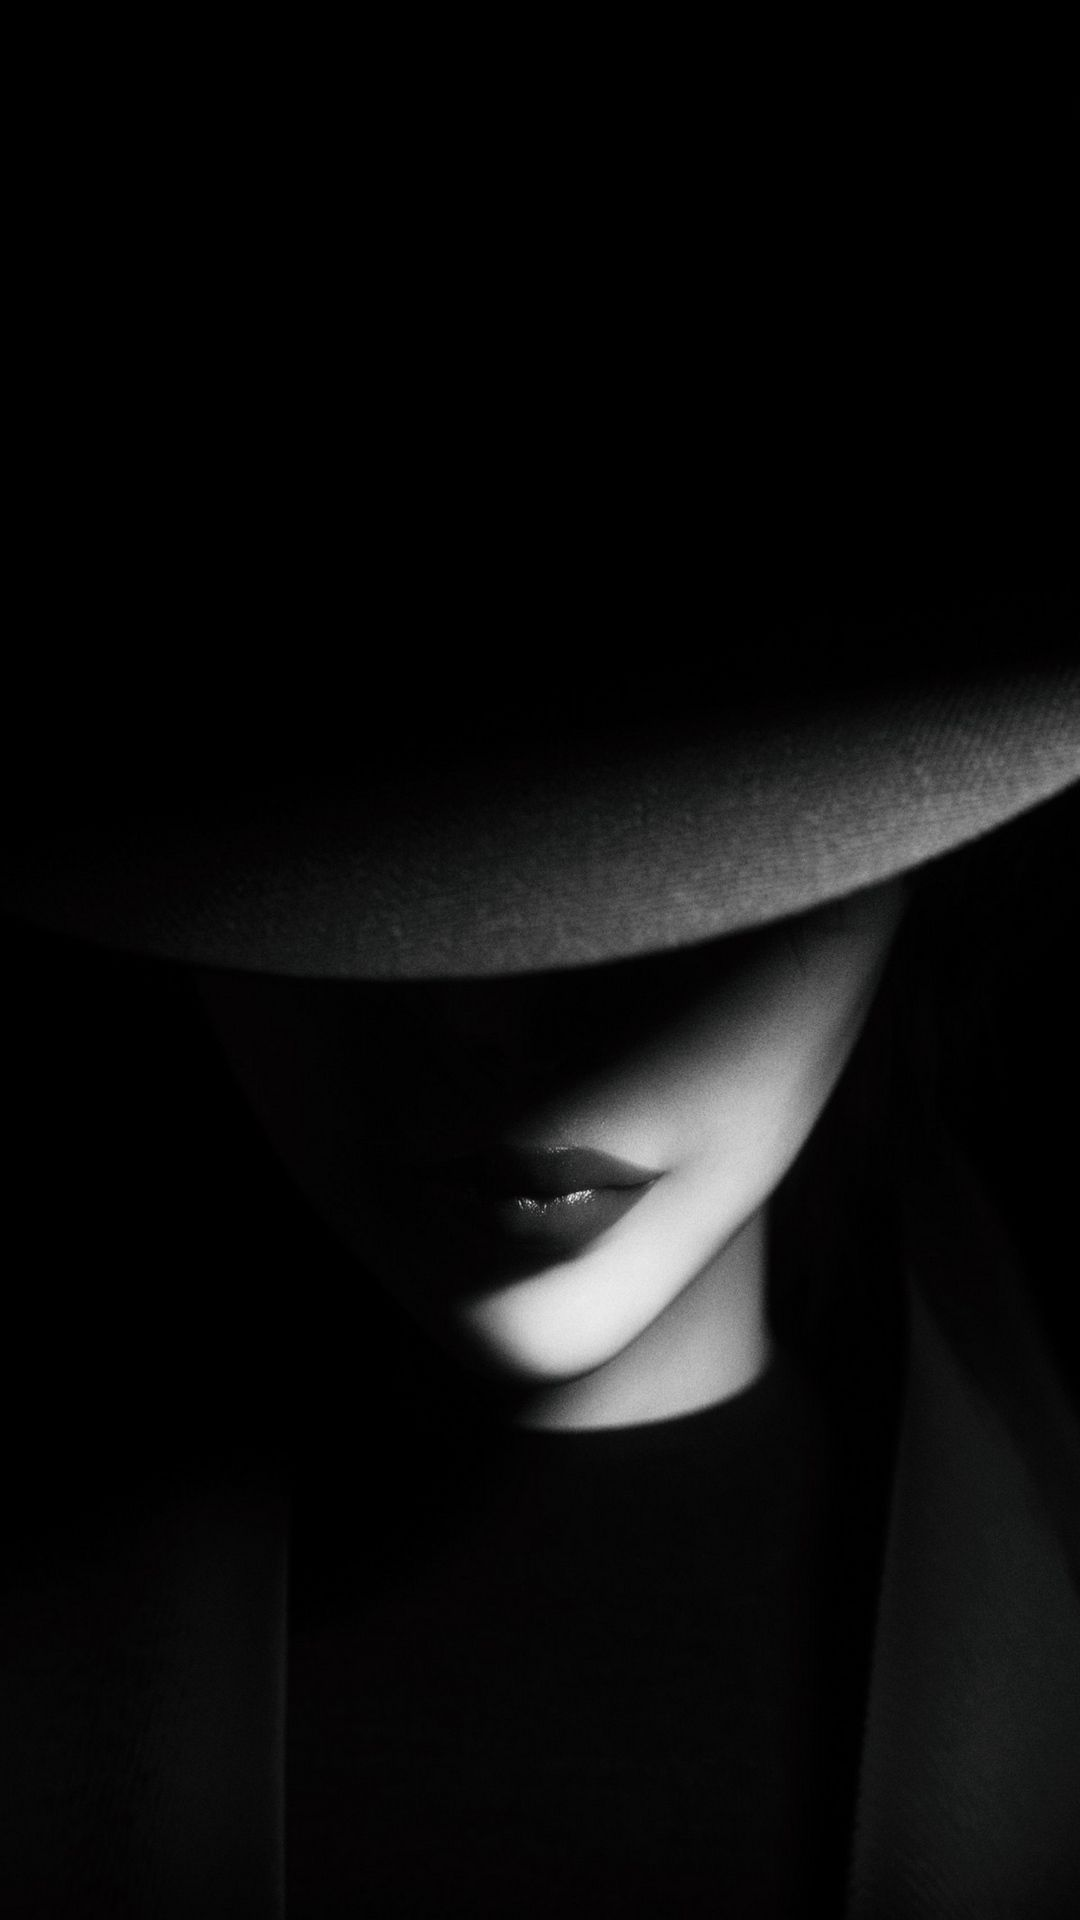 Download Wallpaper 1080x1920 Girl Hat Bw Dark Shadows Samsung Galaxy S4 S5 Note Sony Xp In 2020 Low Key Portraits Black And White Portraits Cute Black Wallpaper